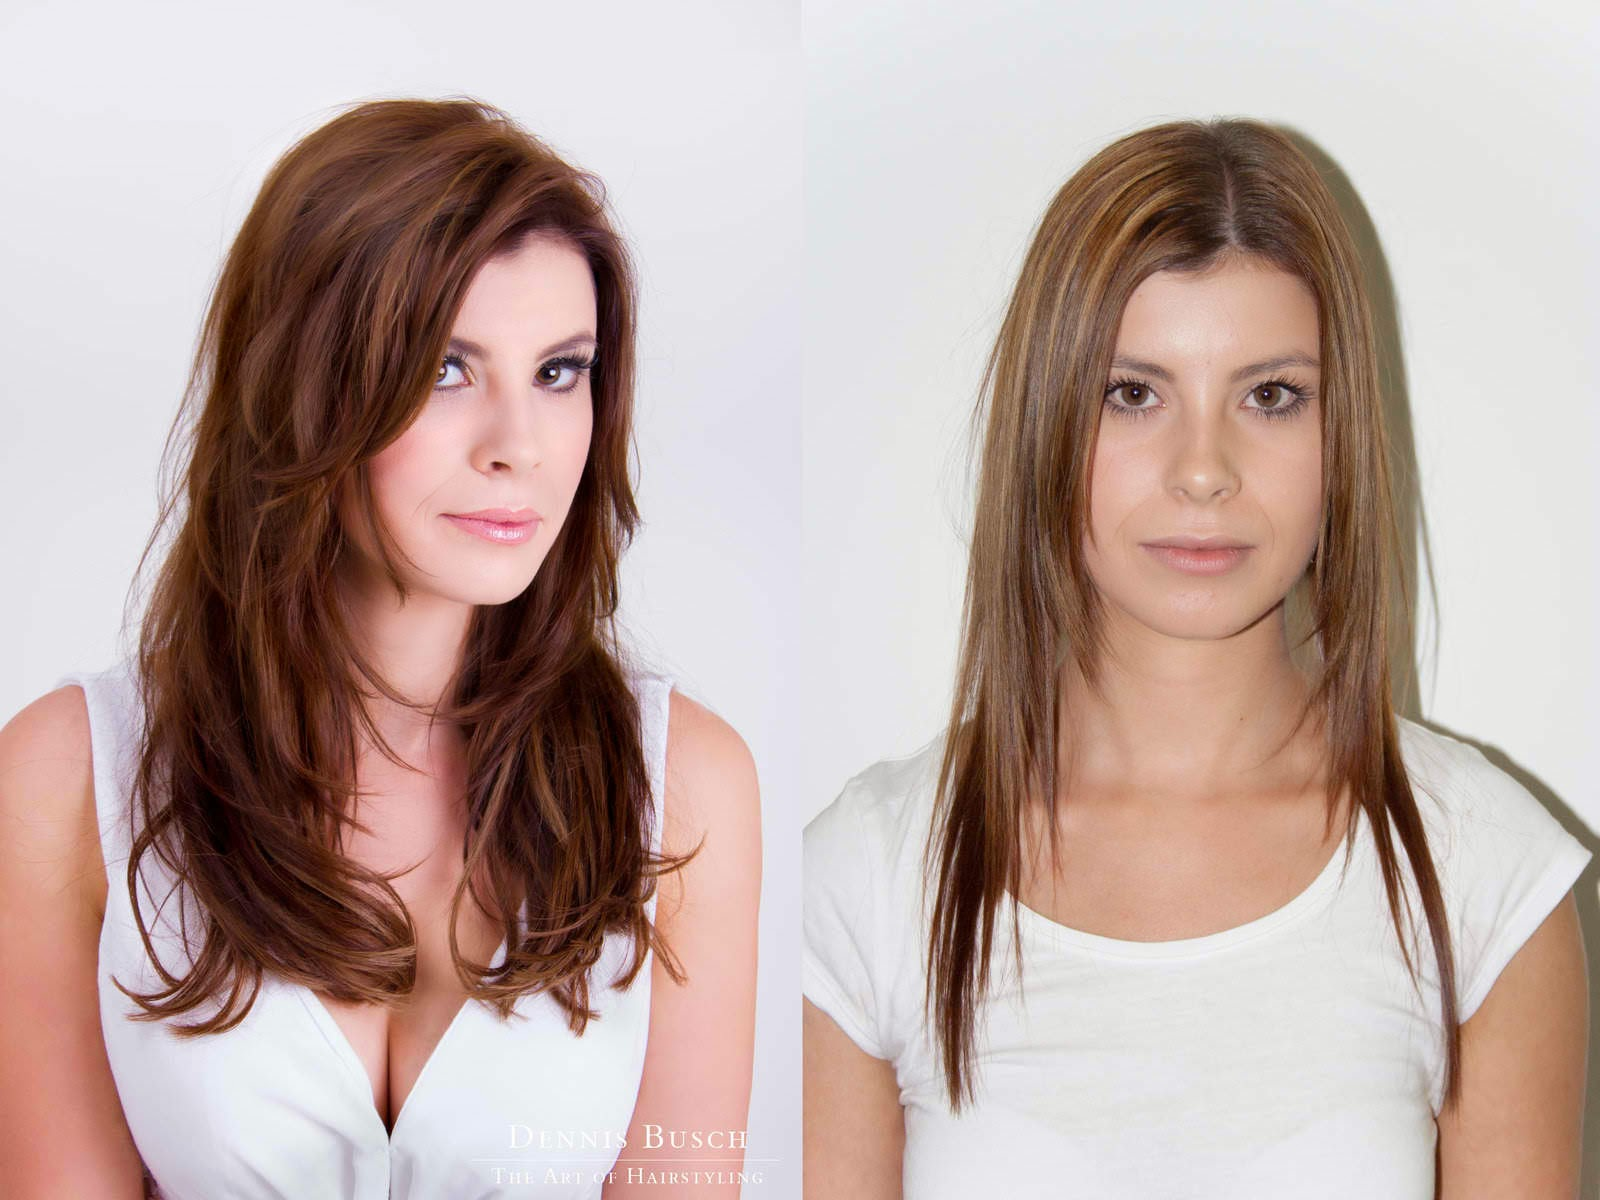 Woman's haircut (BEFORE & AFTER)